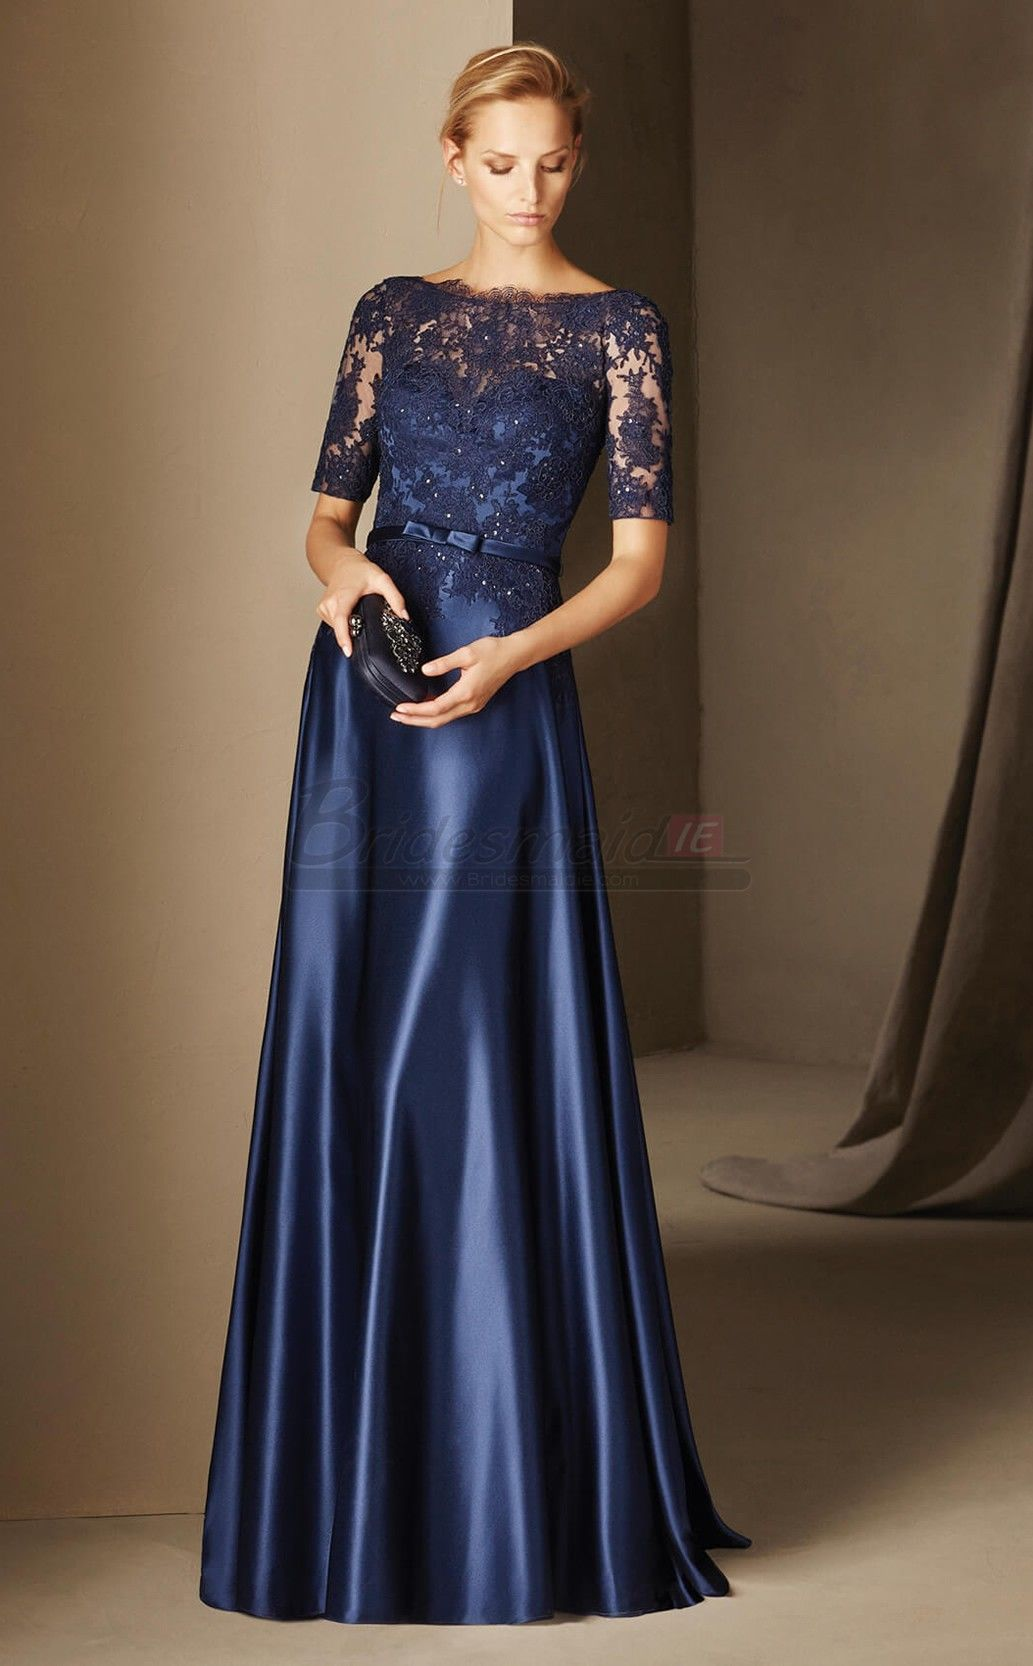 Image result for midnight blue and gold wedding dress vitaus